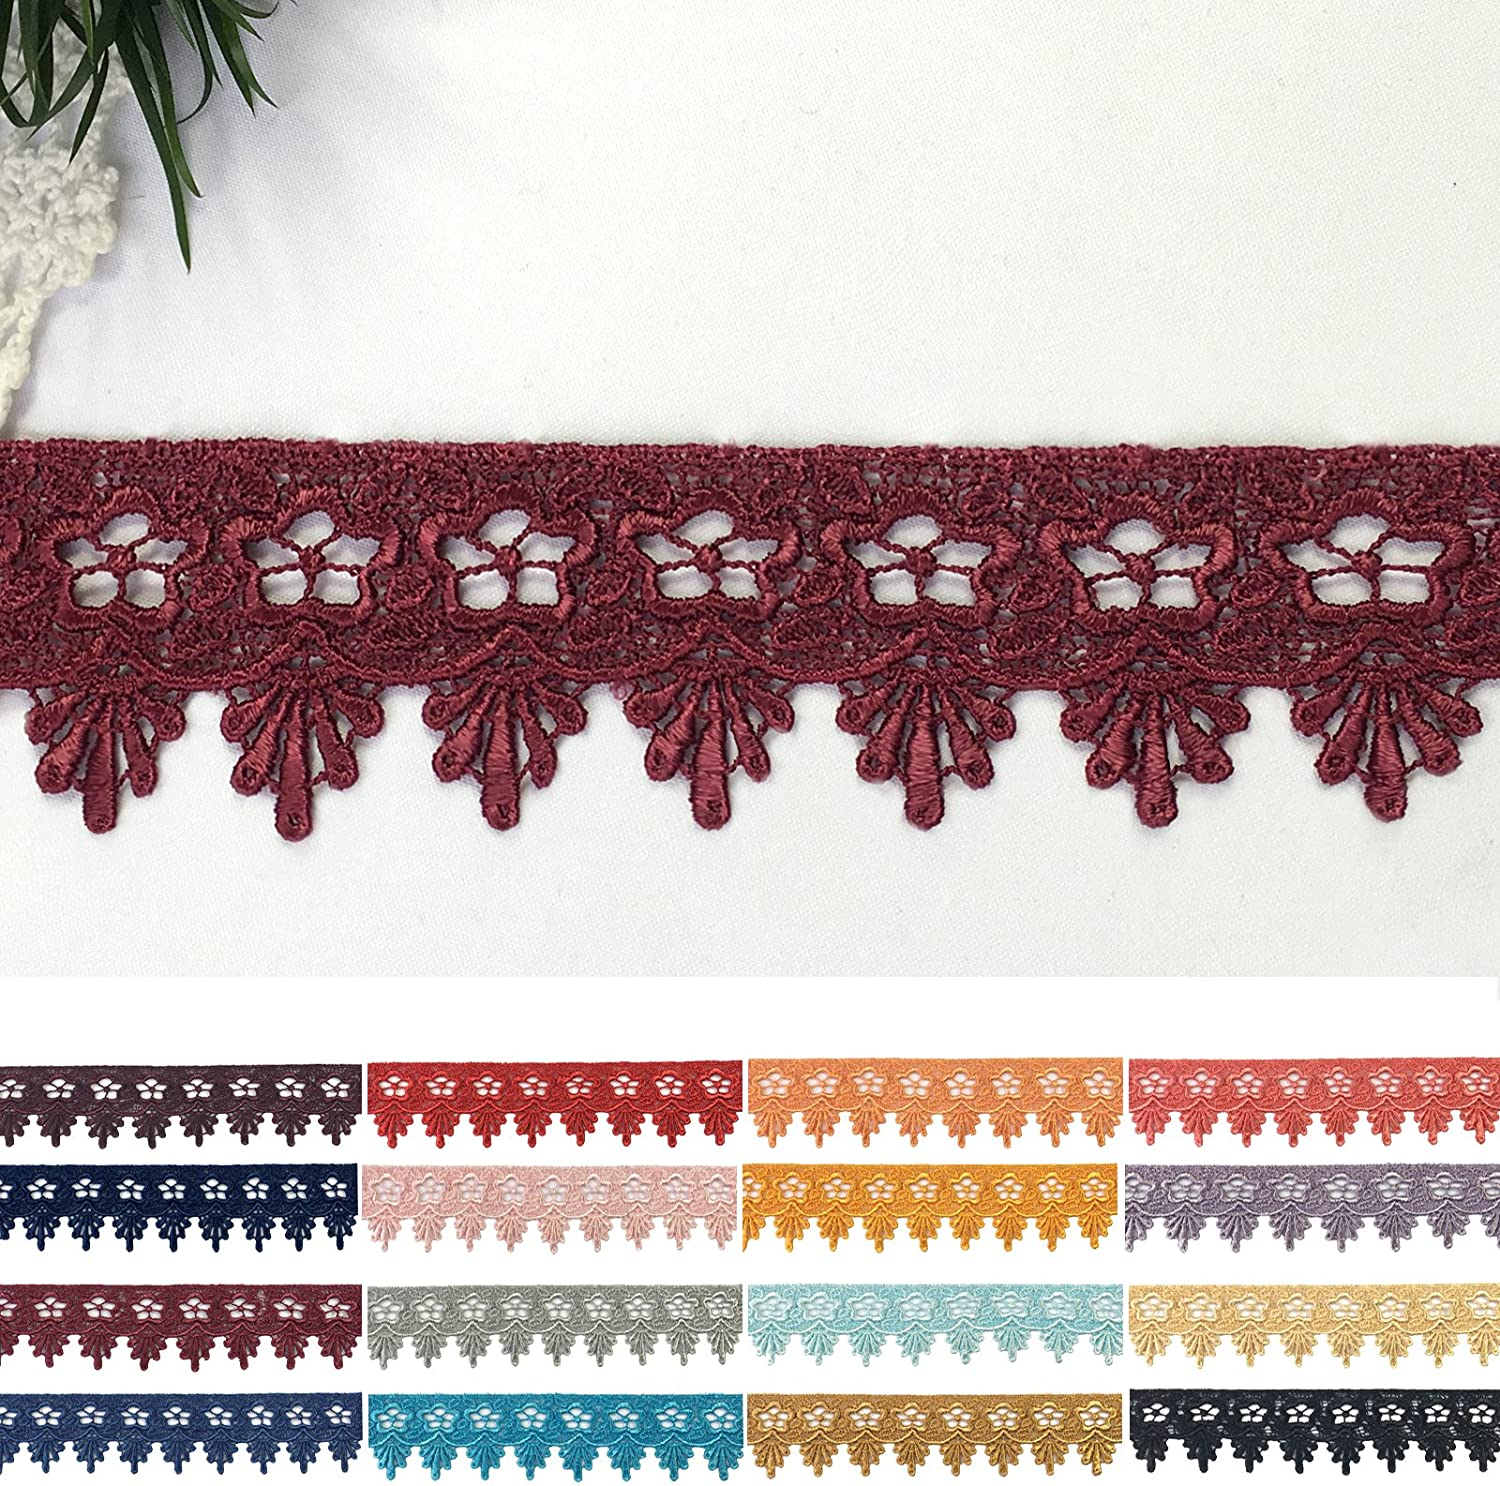 Altotux 1.75 16 colors Rayon Floral Venice Red Lilac Blue Pink Lace Trim By Yard Burgundy